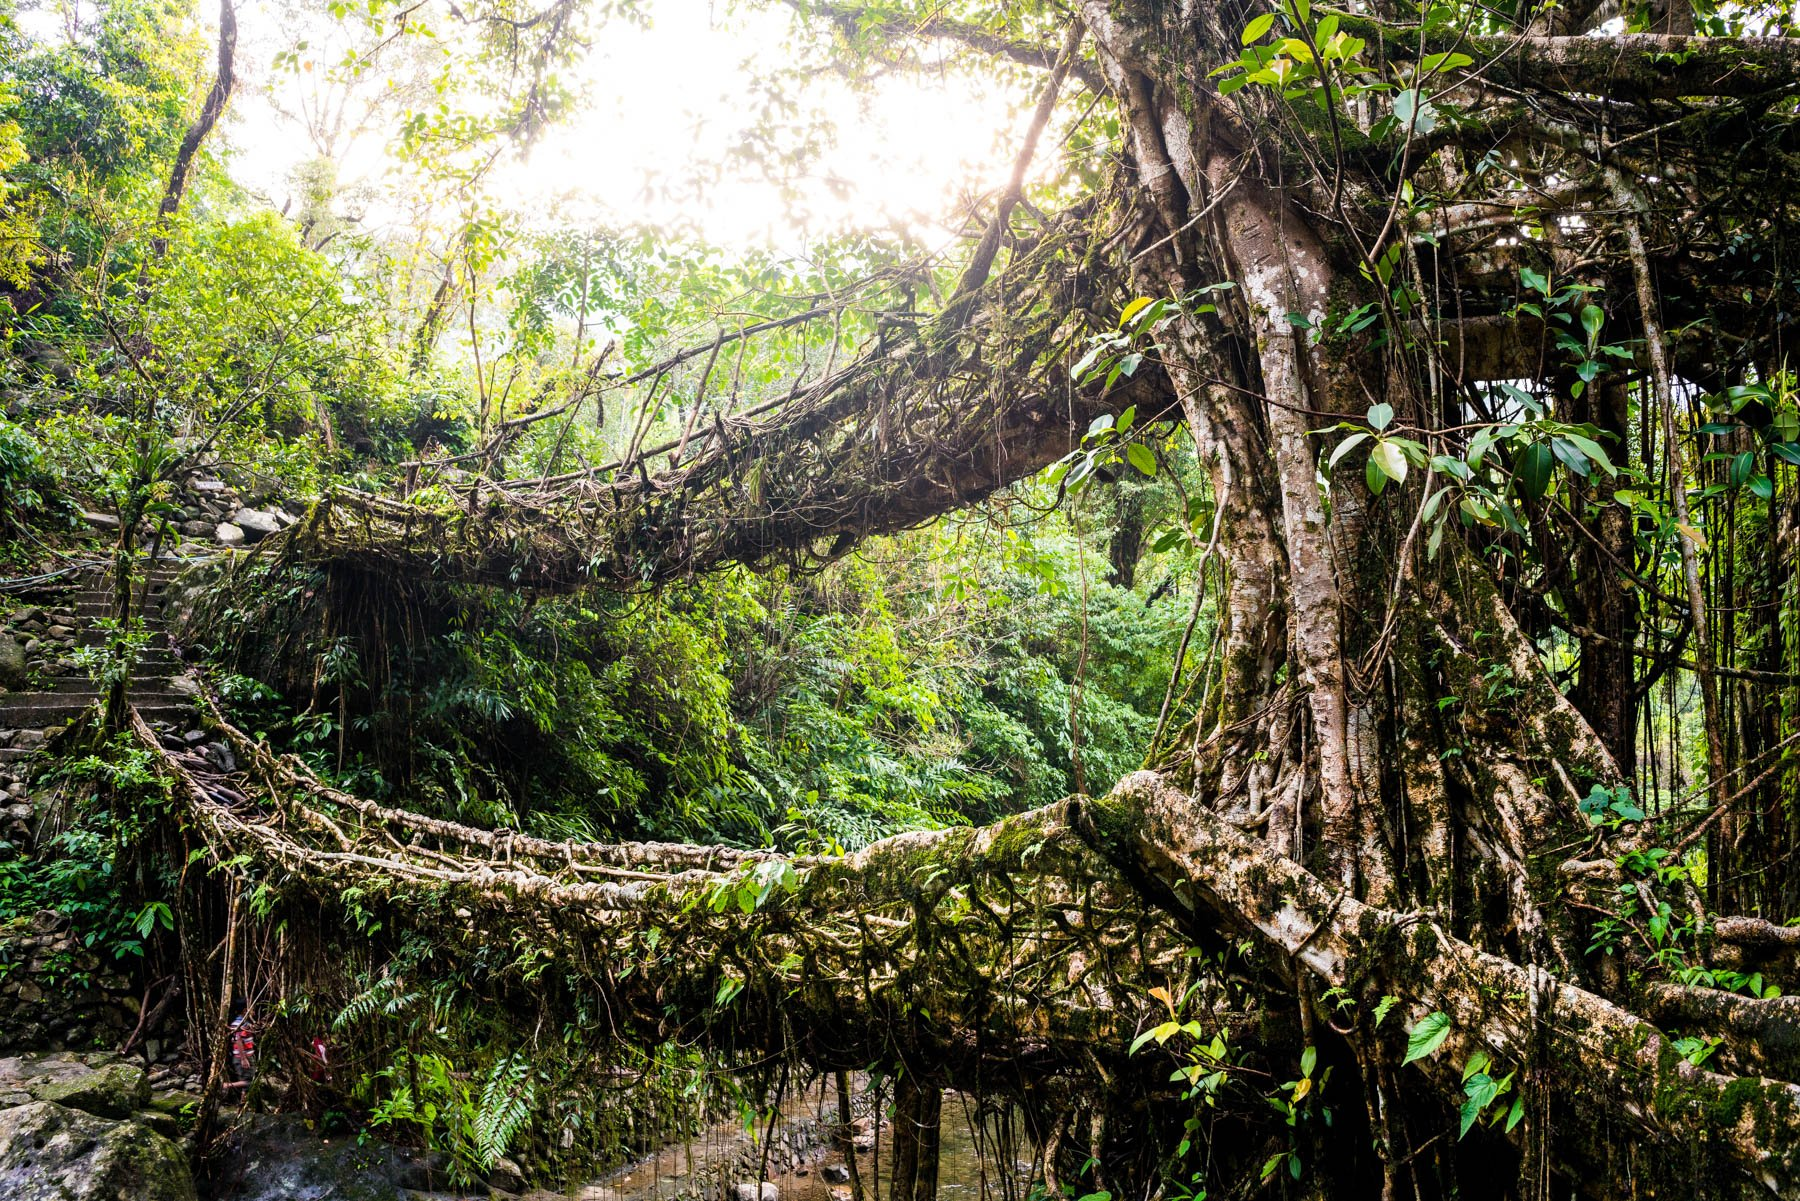 Photo essay of Nongriat and the living root bridges of Meghalaya, India - The Umshiang double-decker root bridge - Lost With Purpose